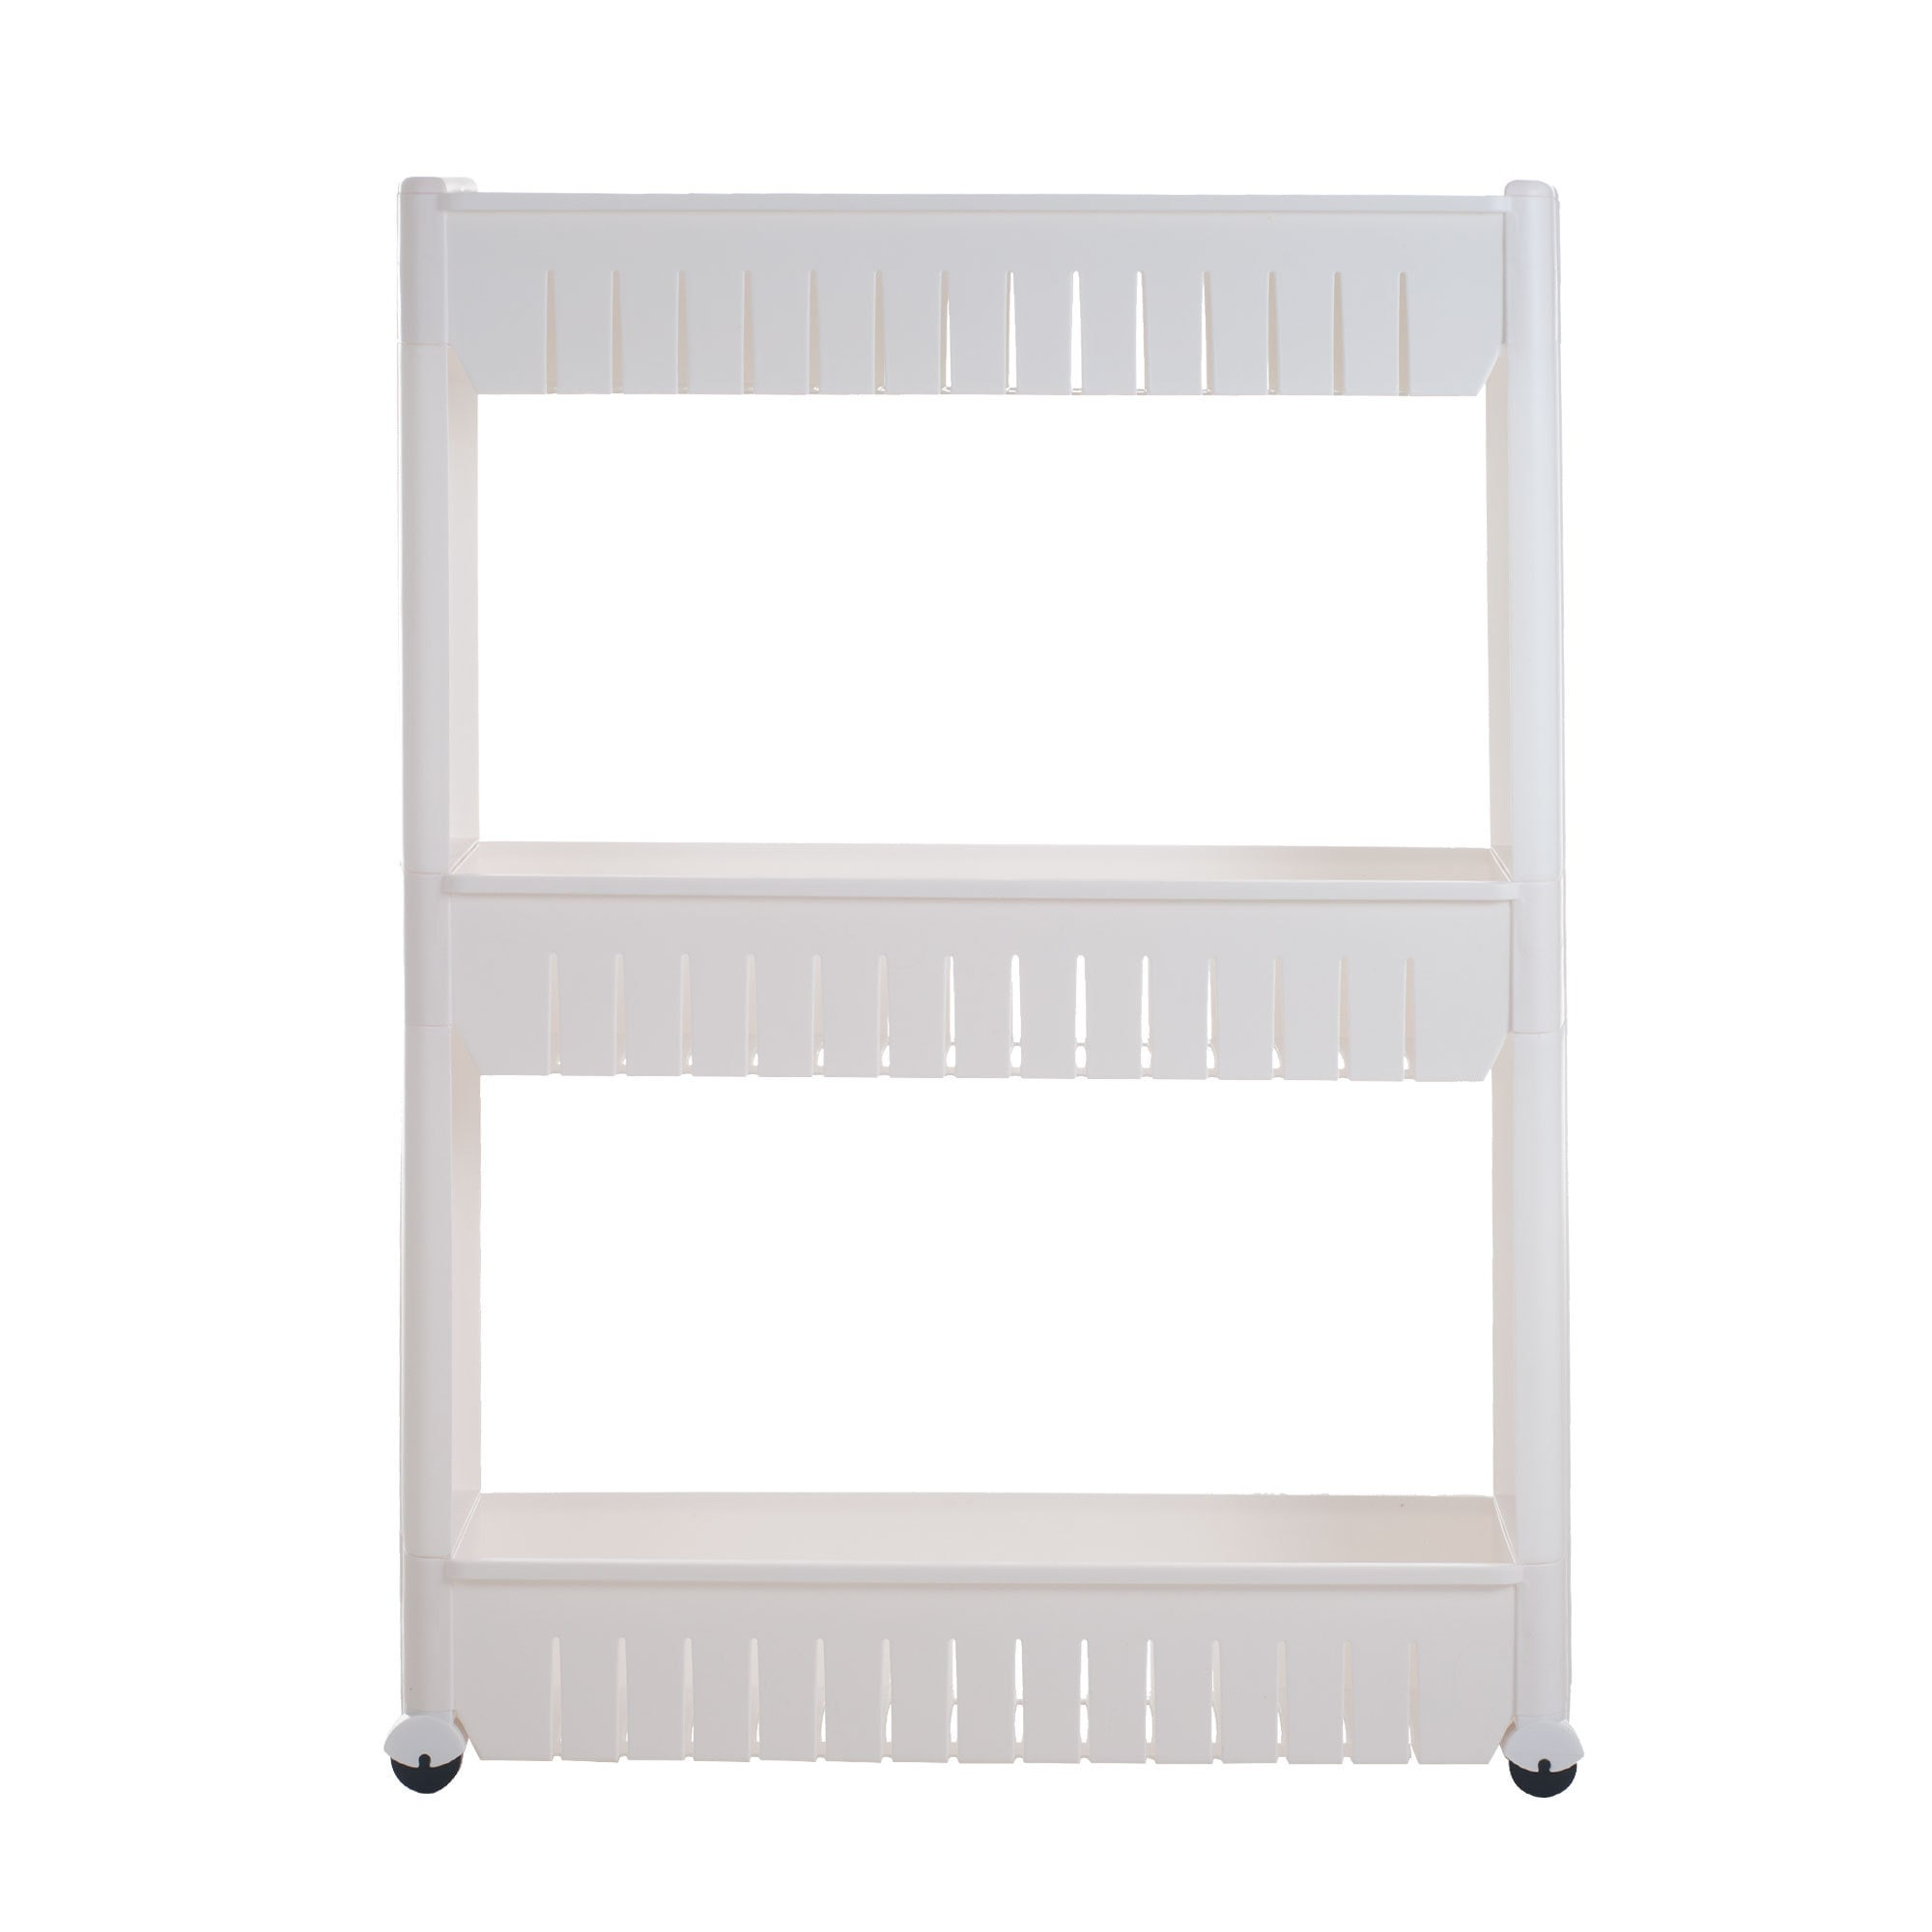 Chef Buddy Mobile Shelving Unit Organizer with 3 Large St...